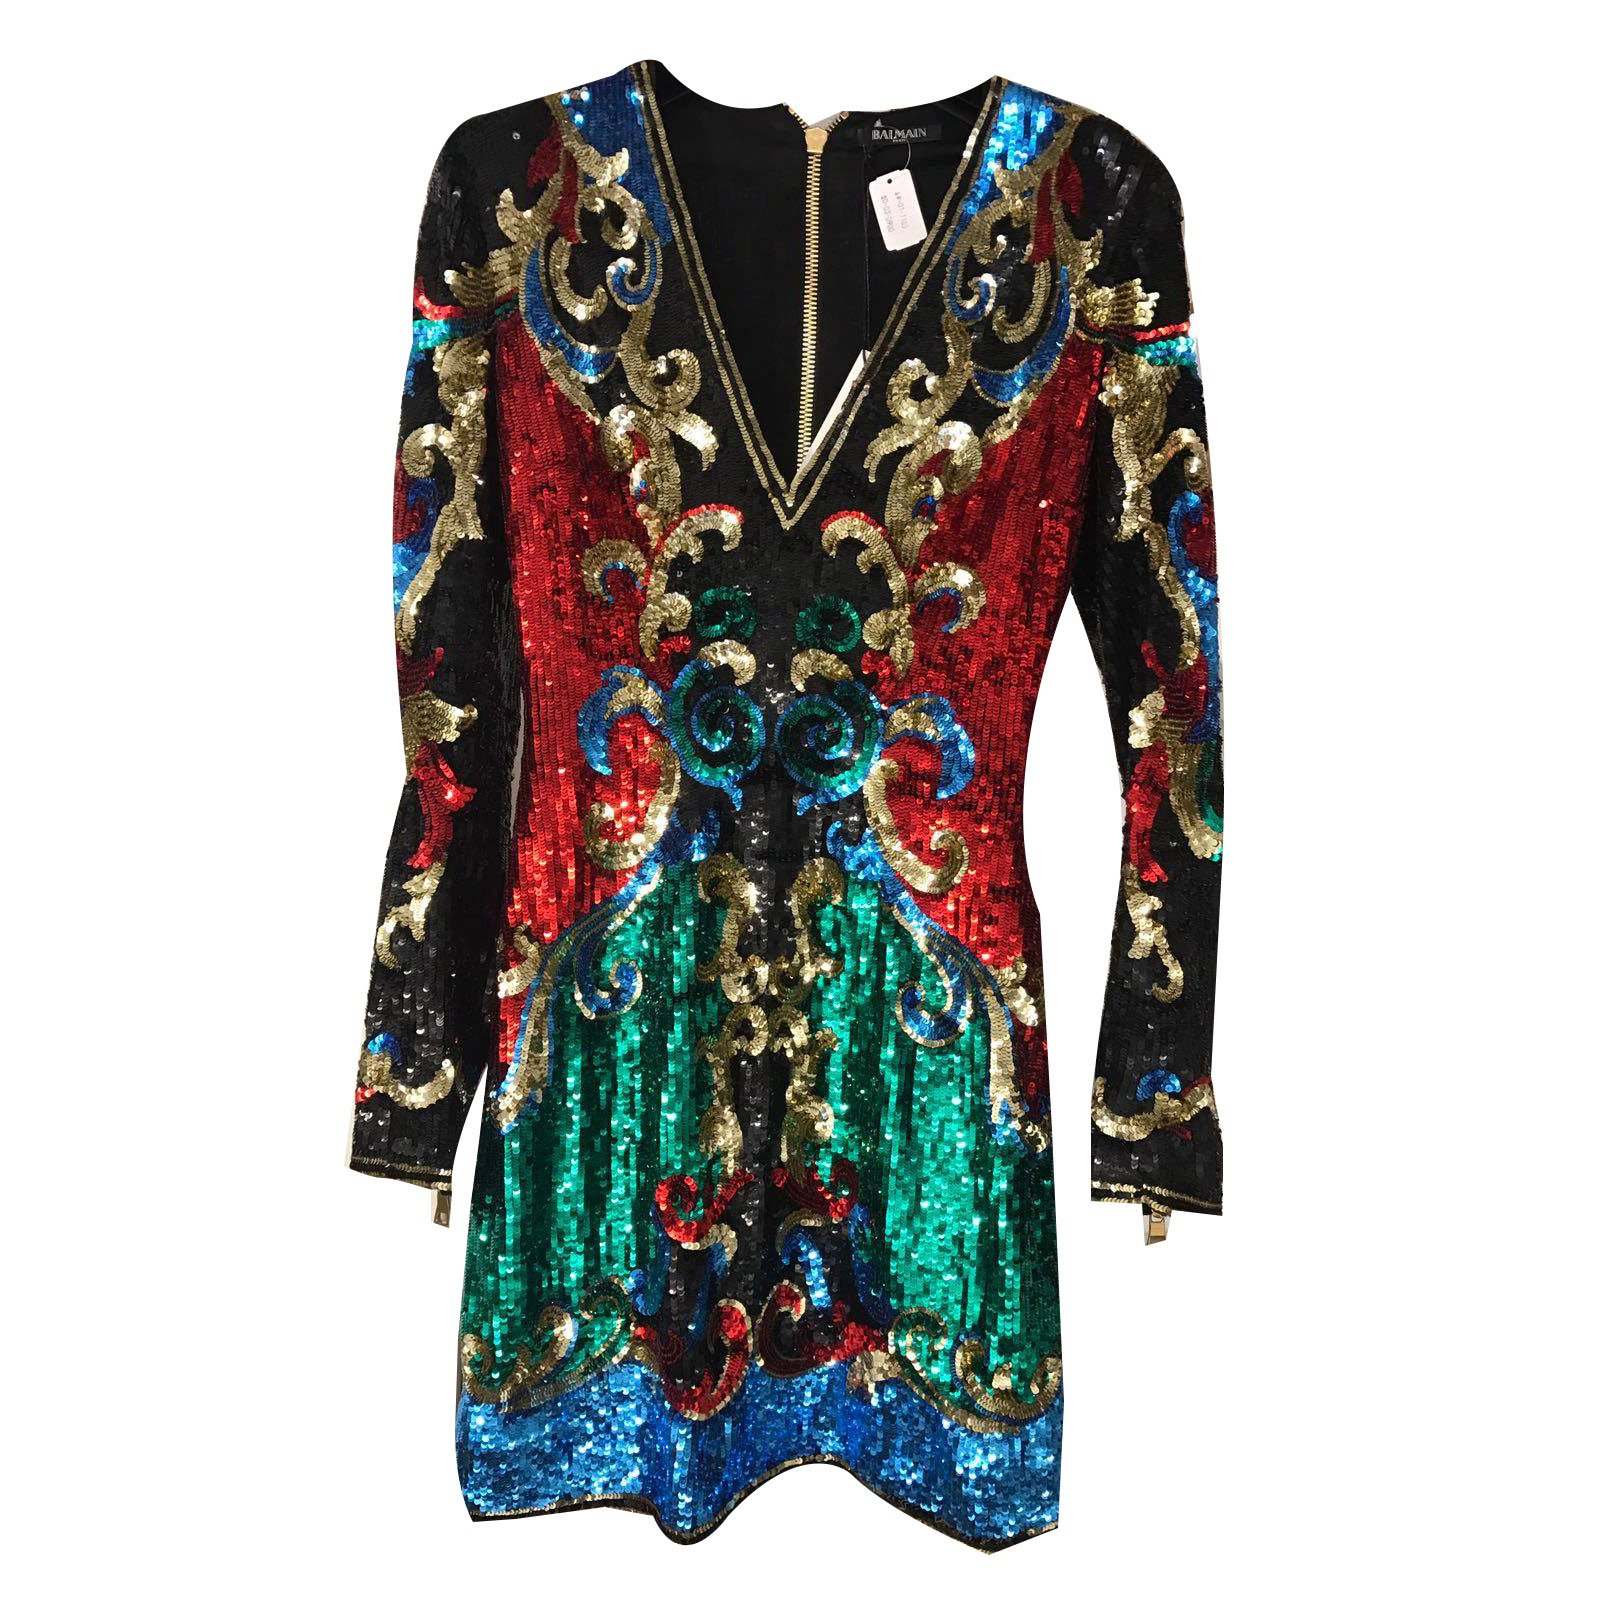 Balmain V Neck Sequin Embellished Mini Dress Dresses Silk Multiple Colors Ref 35983 Joli Closet